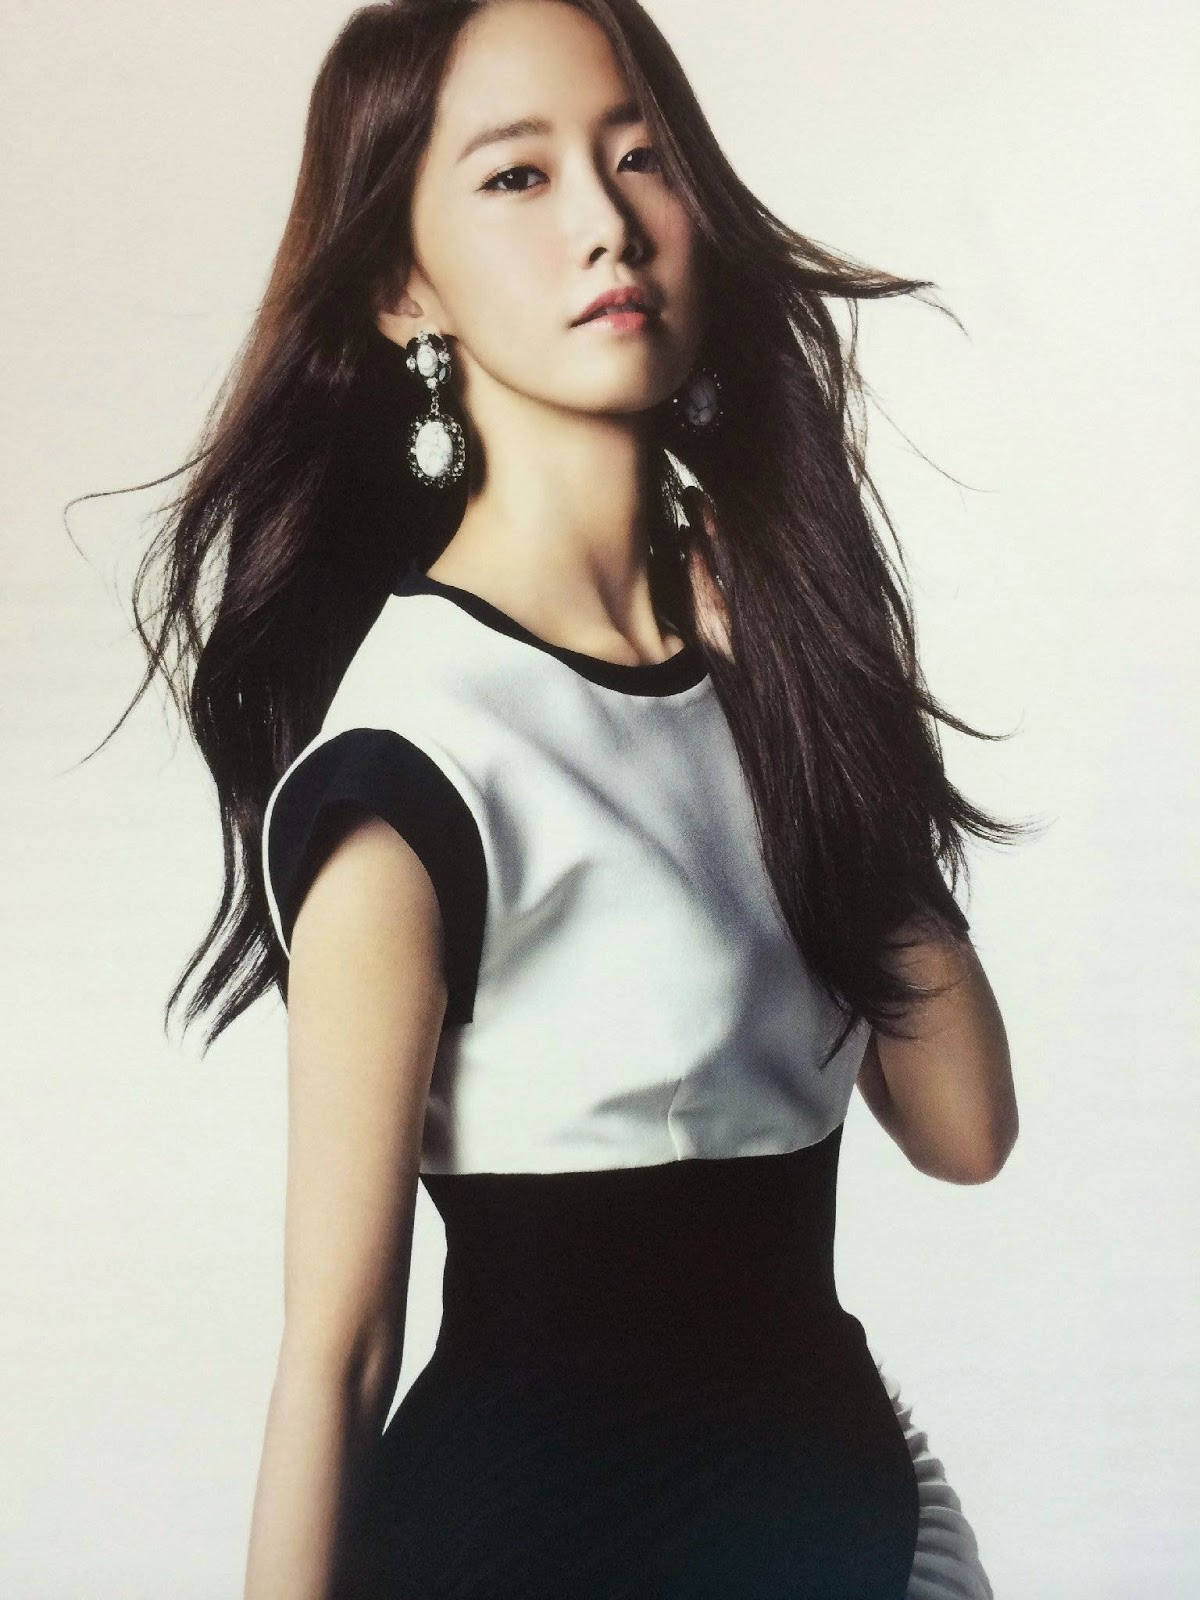 SNSD YoonA (윤아; ユナ) Girls Generation The Best Scan Photos 7